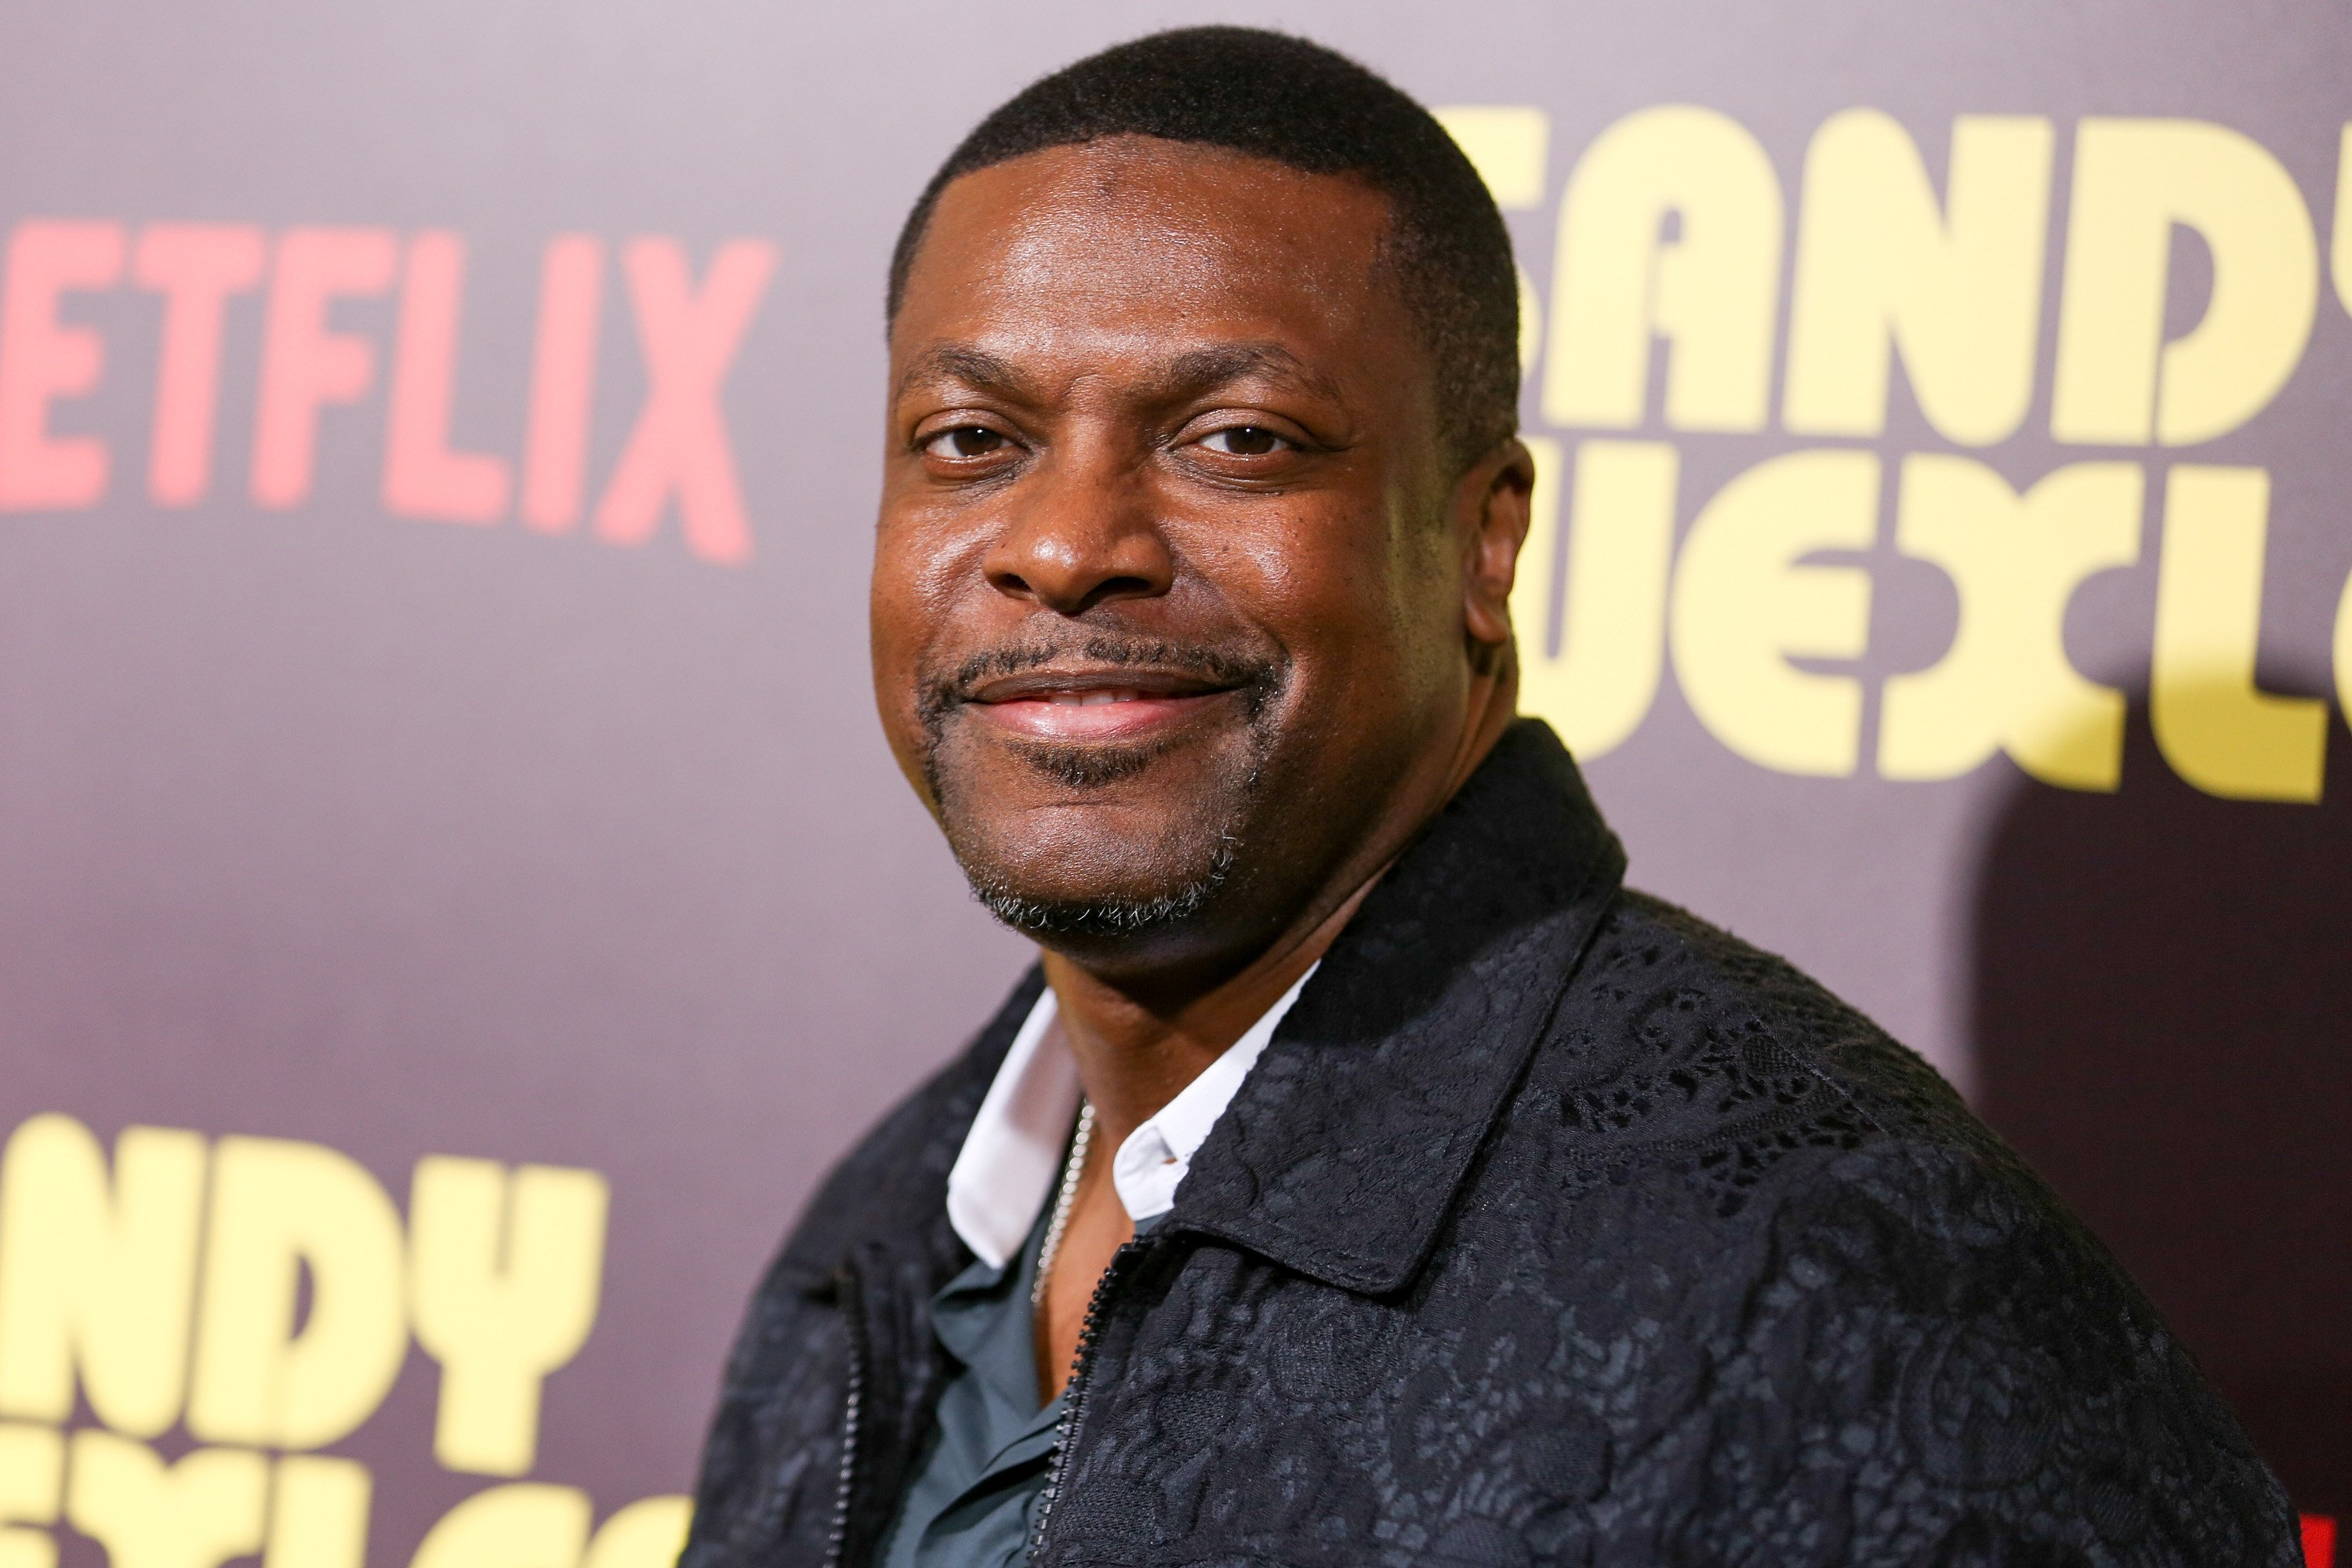 """Actor Chris Tucker attends the premiere of Netflix's """"Sandy Wexler"""" at the ArcLight Cinemas Cinerama Dome on April 6, 2017. 